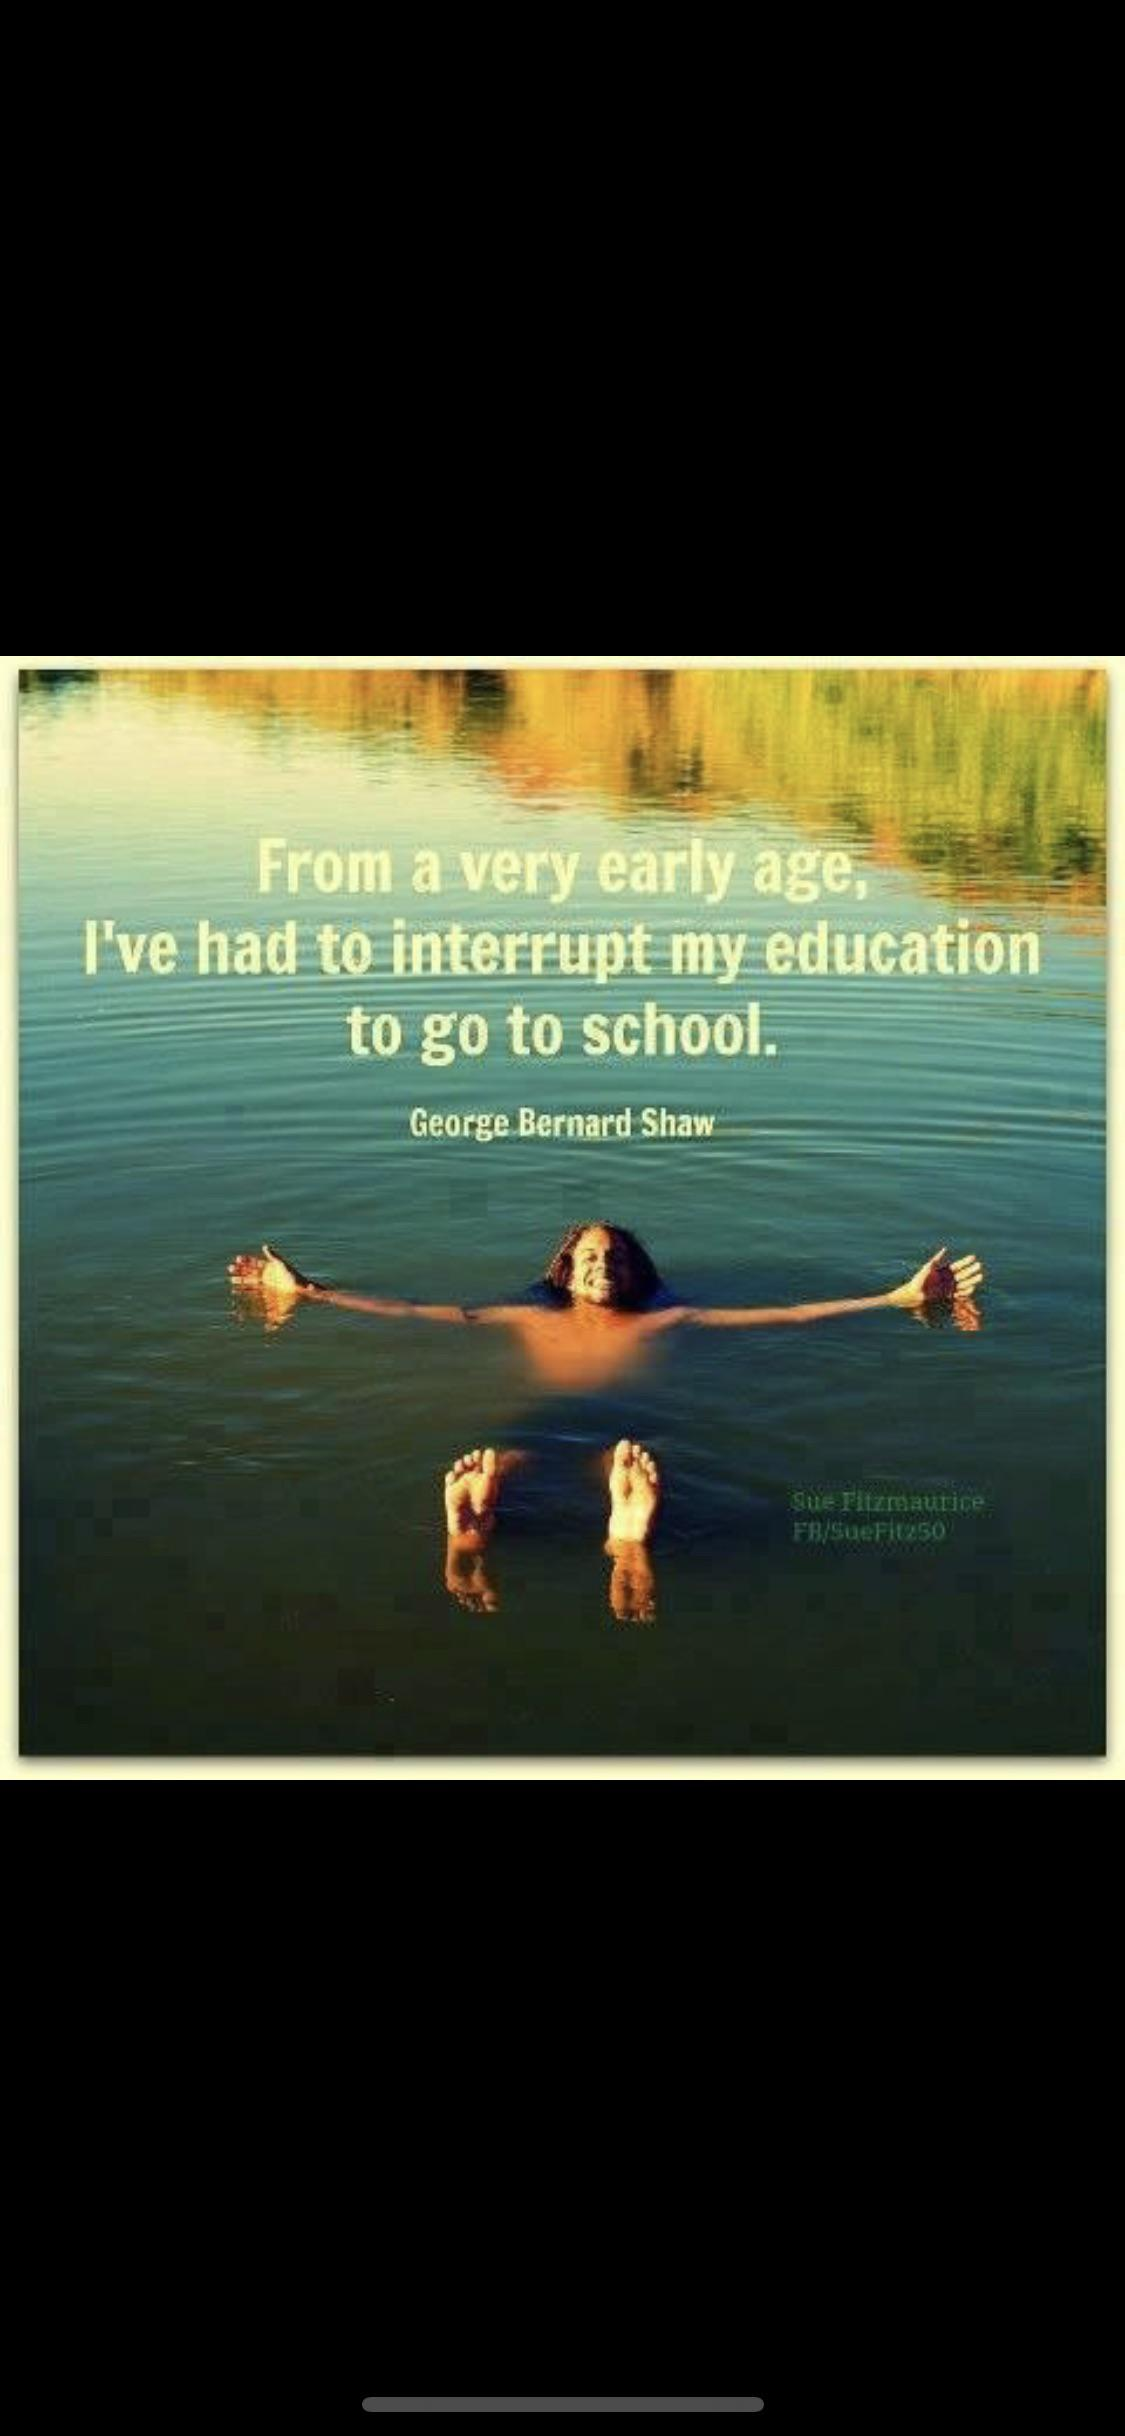 """From a very early age, I've had to interrupt my education to go to school"" – George Bernard Shaw [480 x 480]"